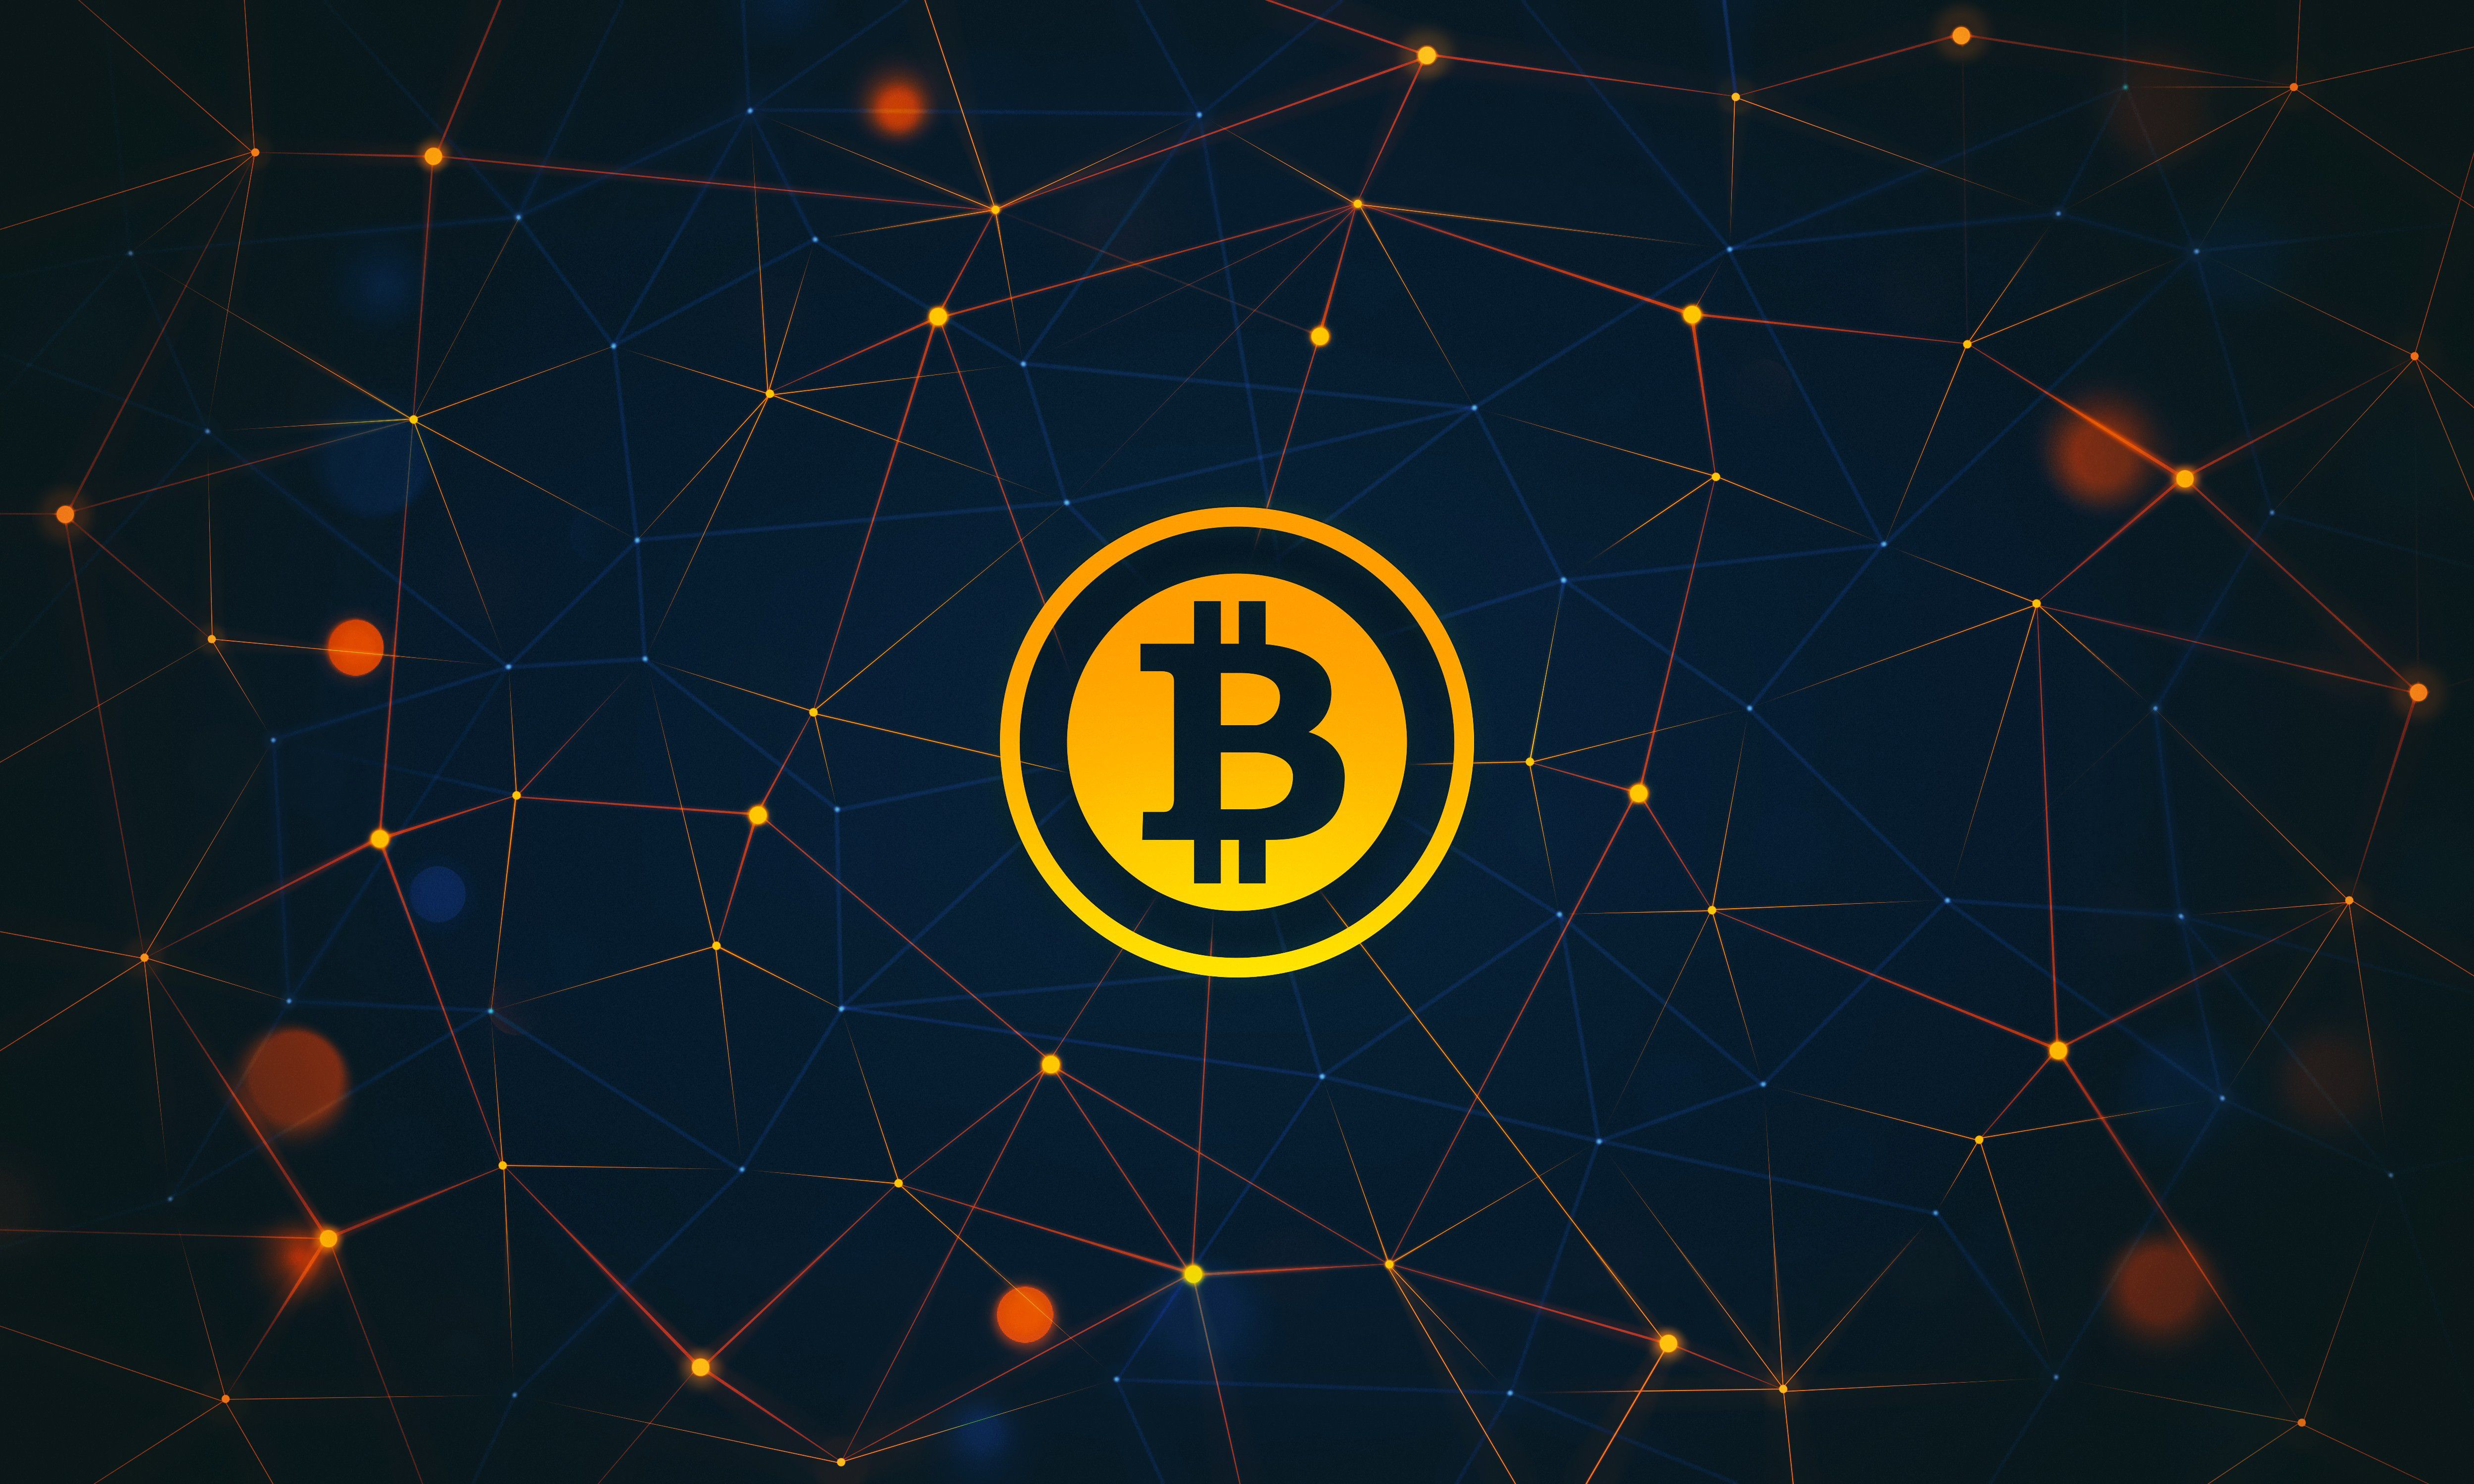 Bitcoin network 4k hd others 4k wallpapers images backgrounds photos and pictures - Background images 4k hd ...